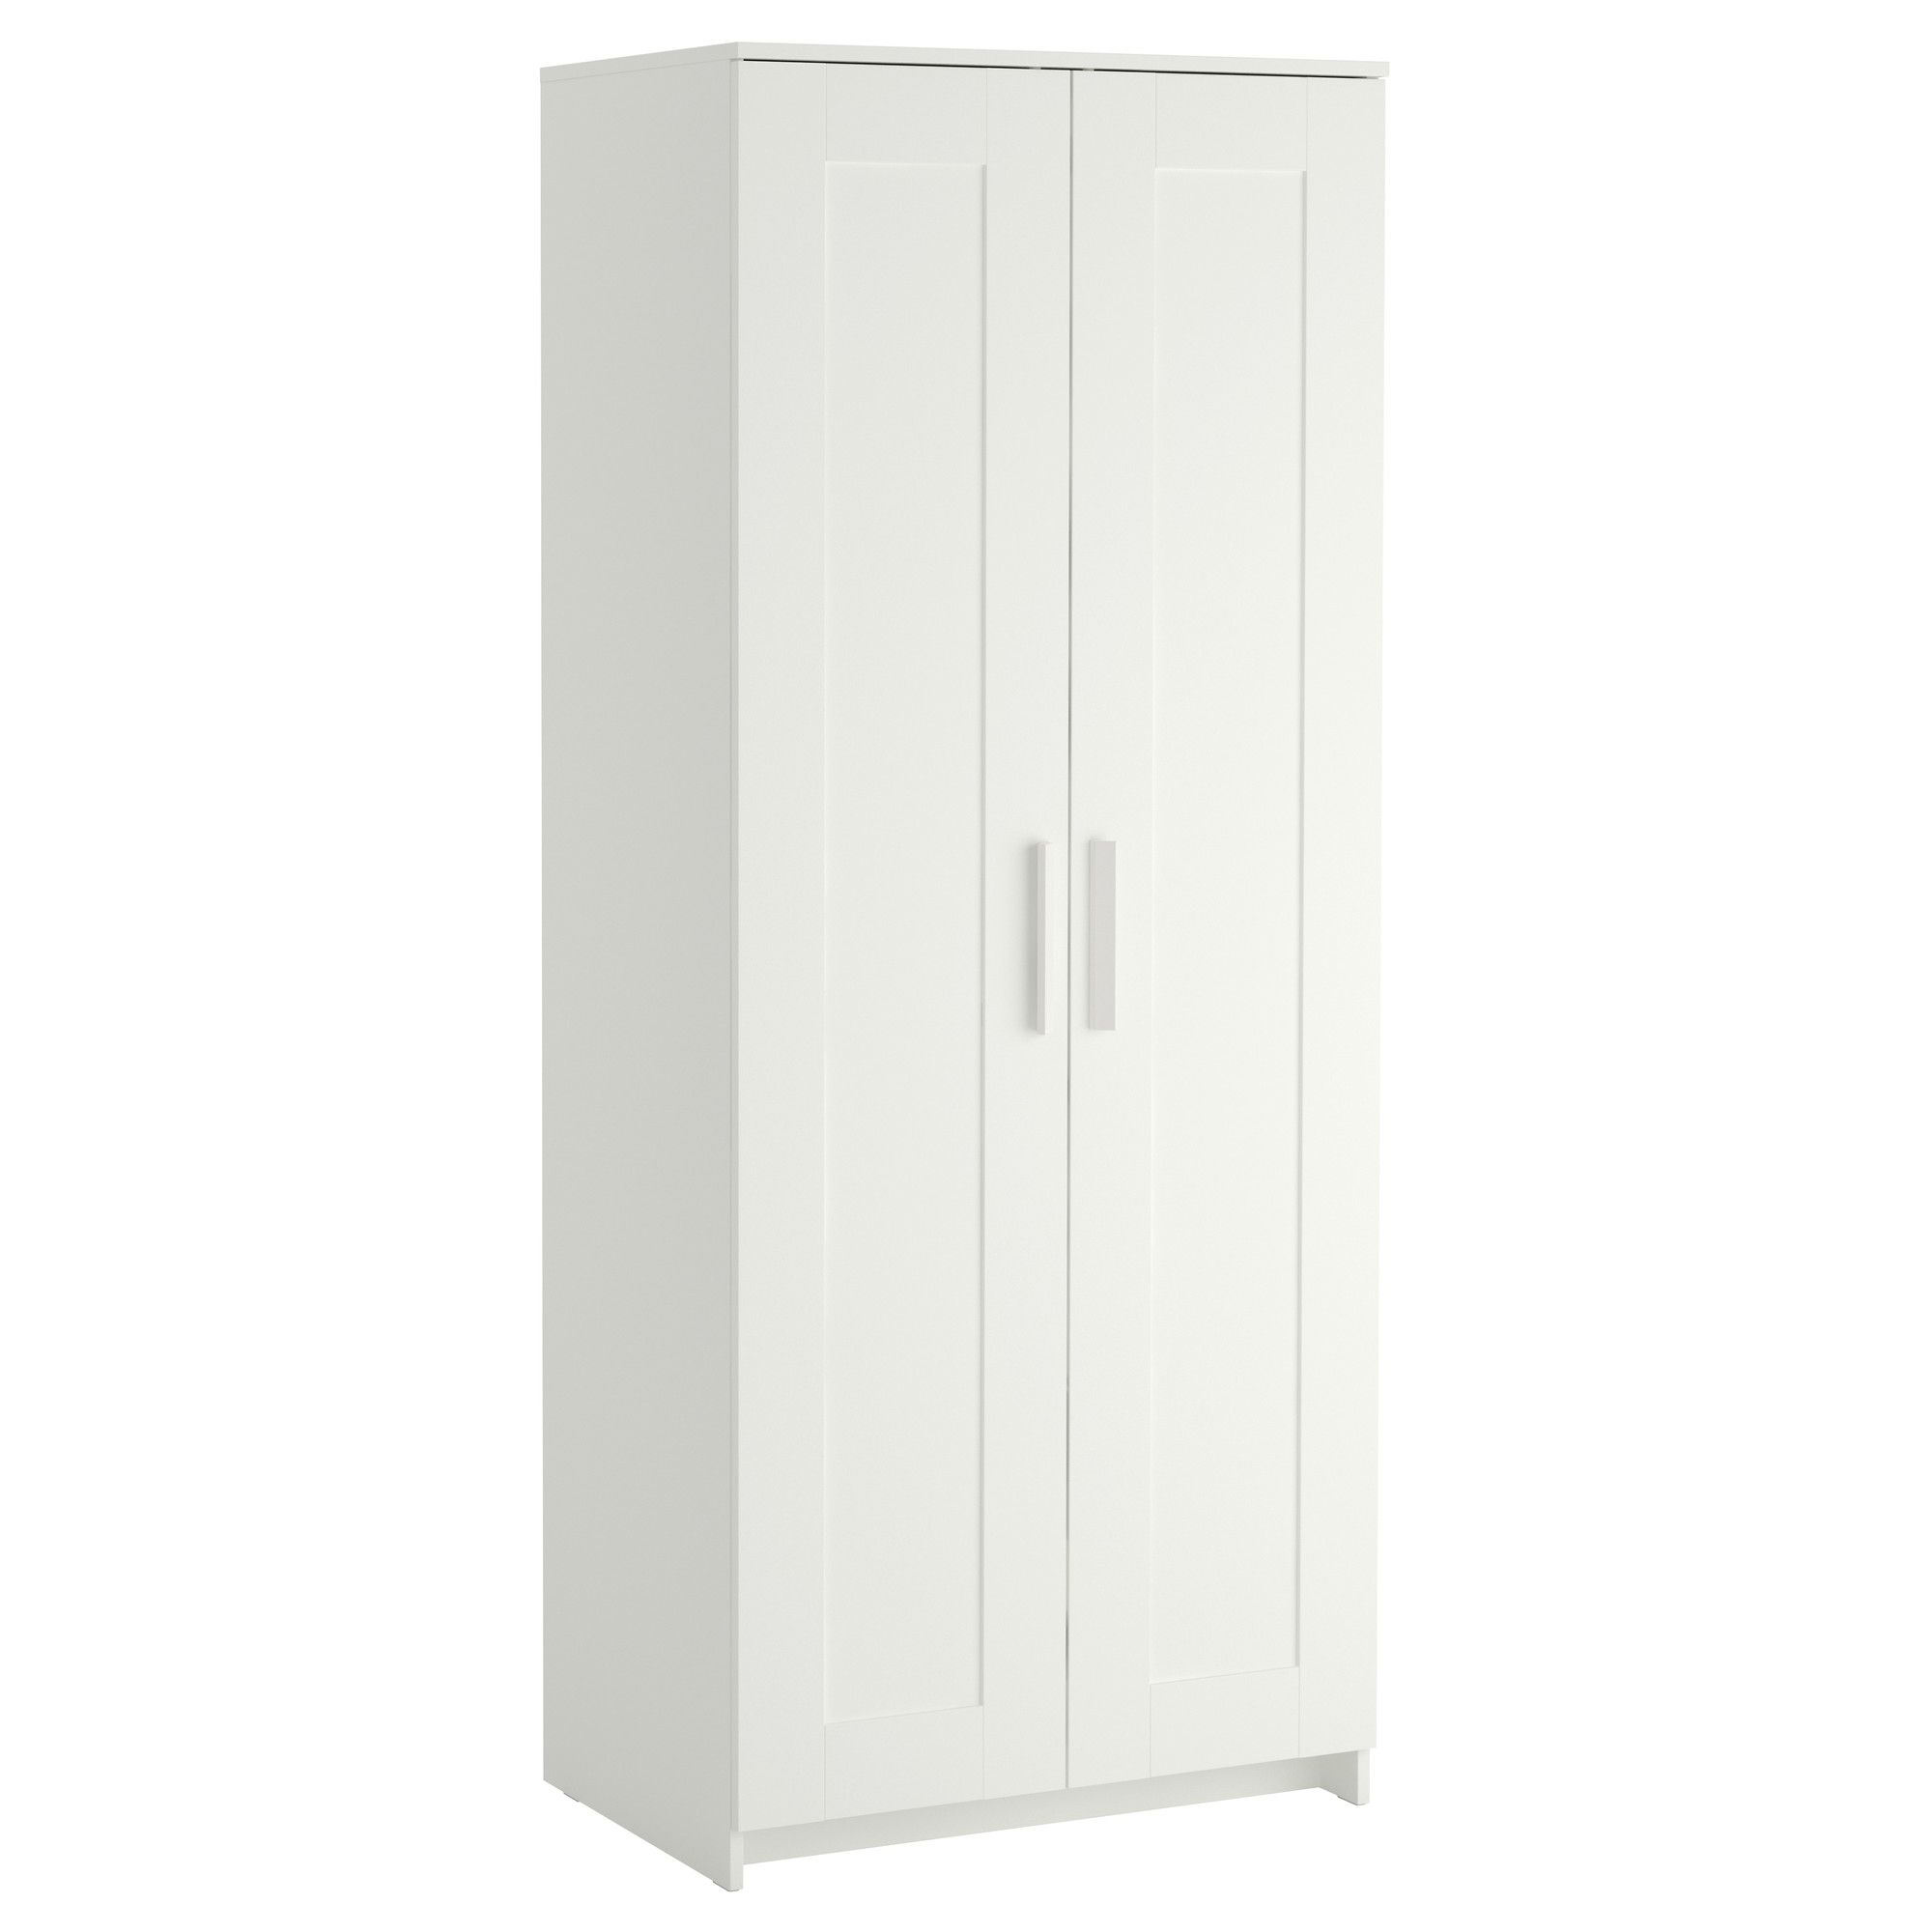 Preferred Brimnes Wardrobe With 2 Doors White 78x190 Cm – Ikea Regarding Short Wardrobes (View 7 of 15)